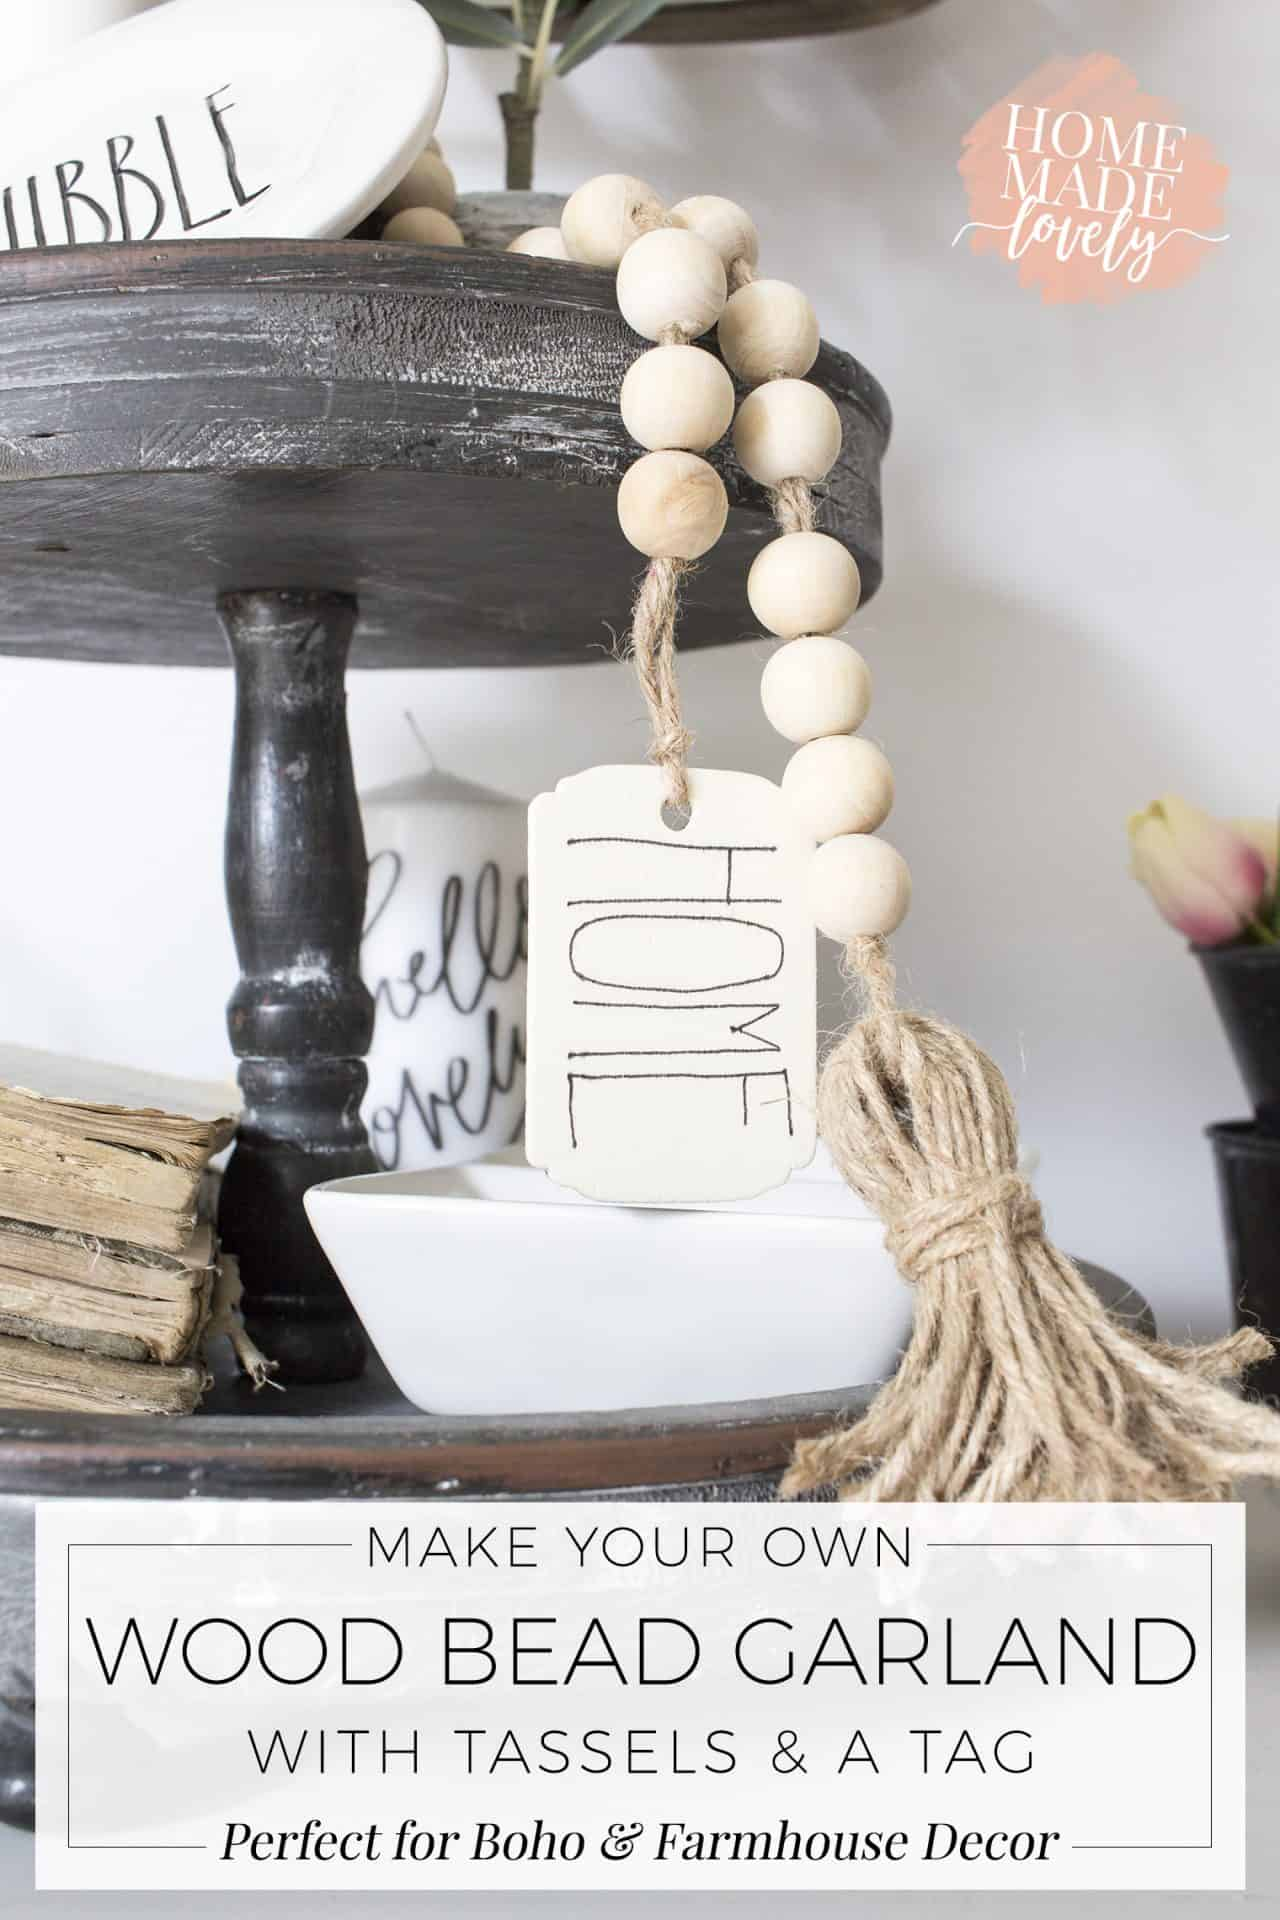 Make your own DIY wood bead garland with tassels and tag for your boho or farmhouse decorated home! The project only takes about 15 minutes!